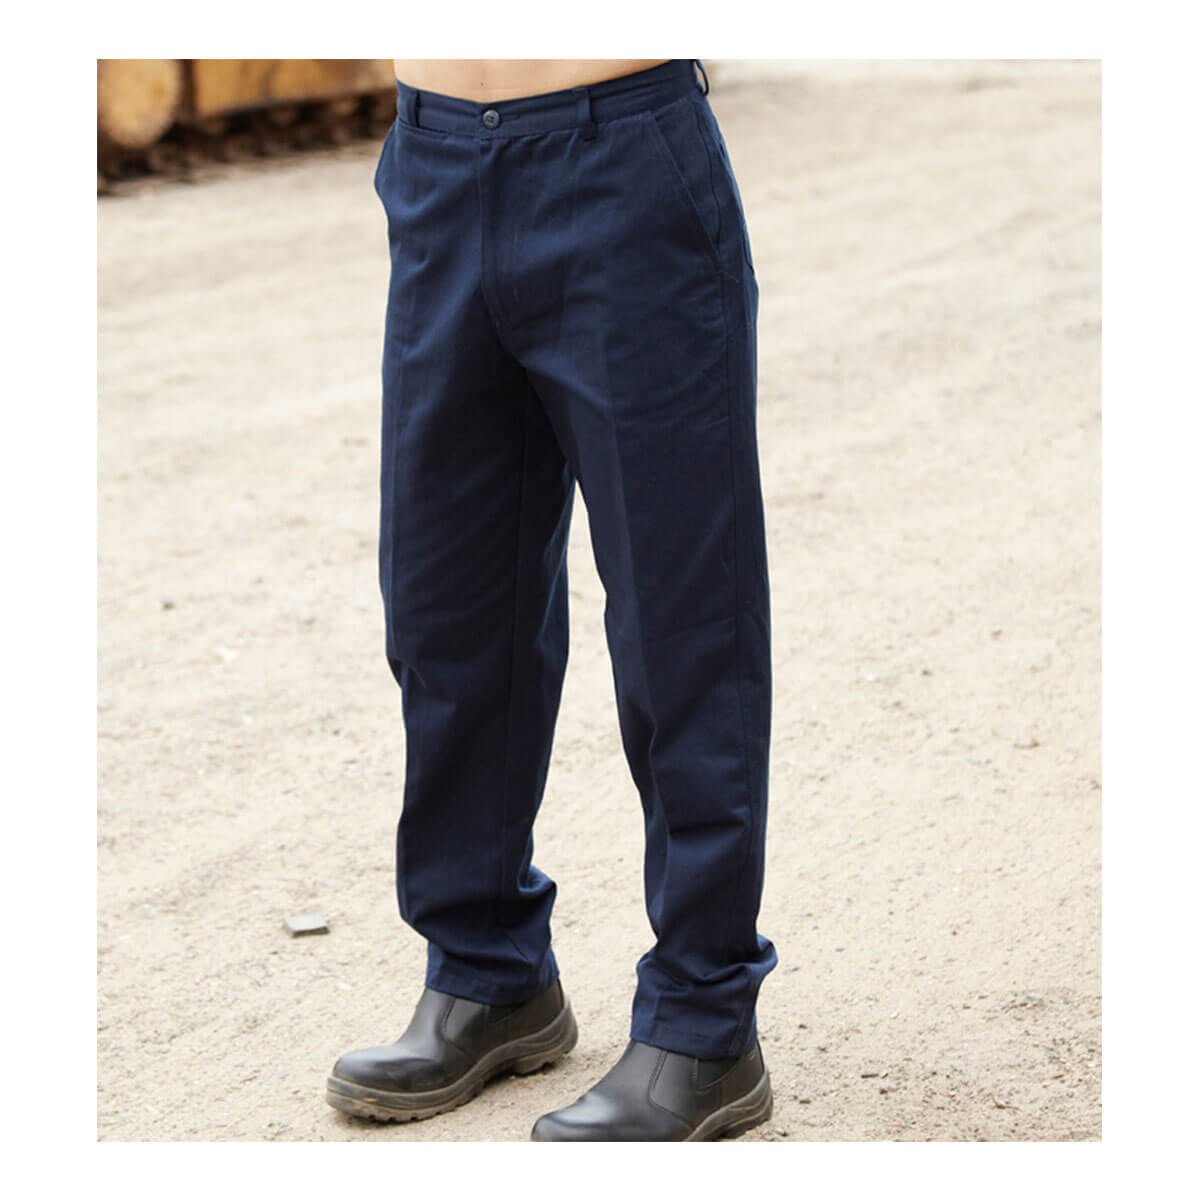 COTTON DRILL CAGO PANTS